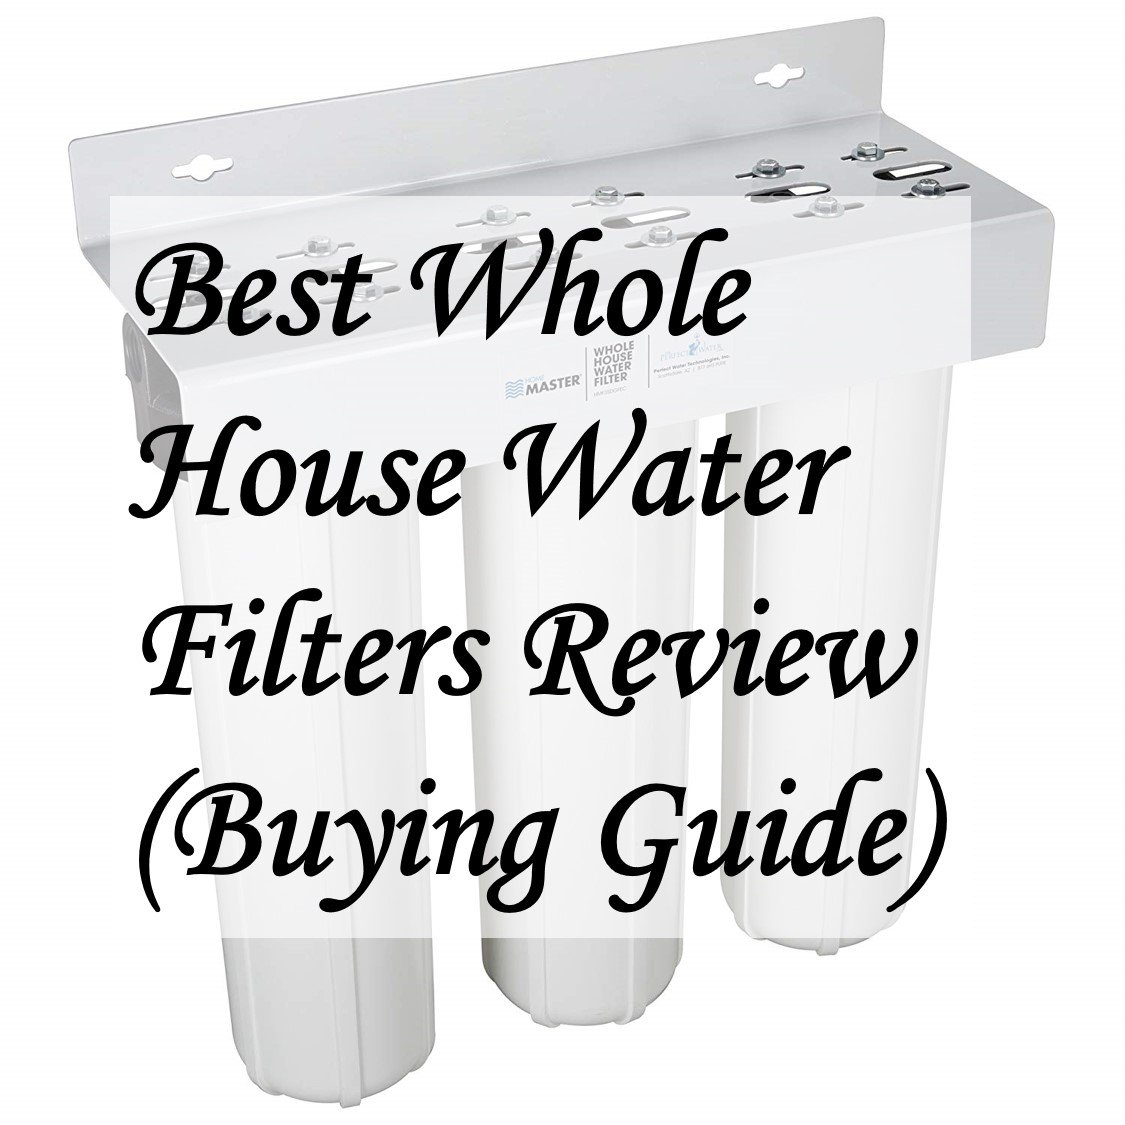 Best Whole House Water Filter Review and Buying Guide